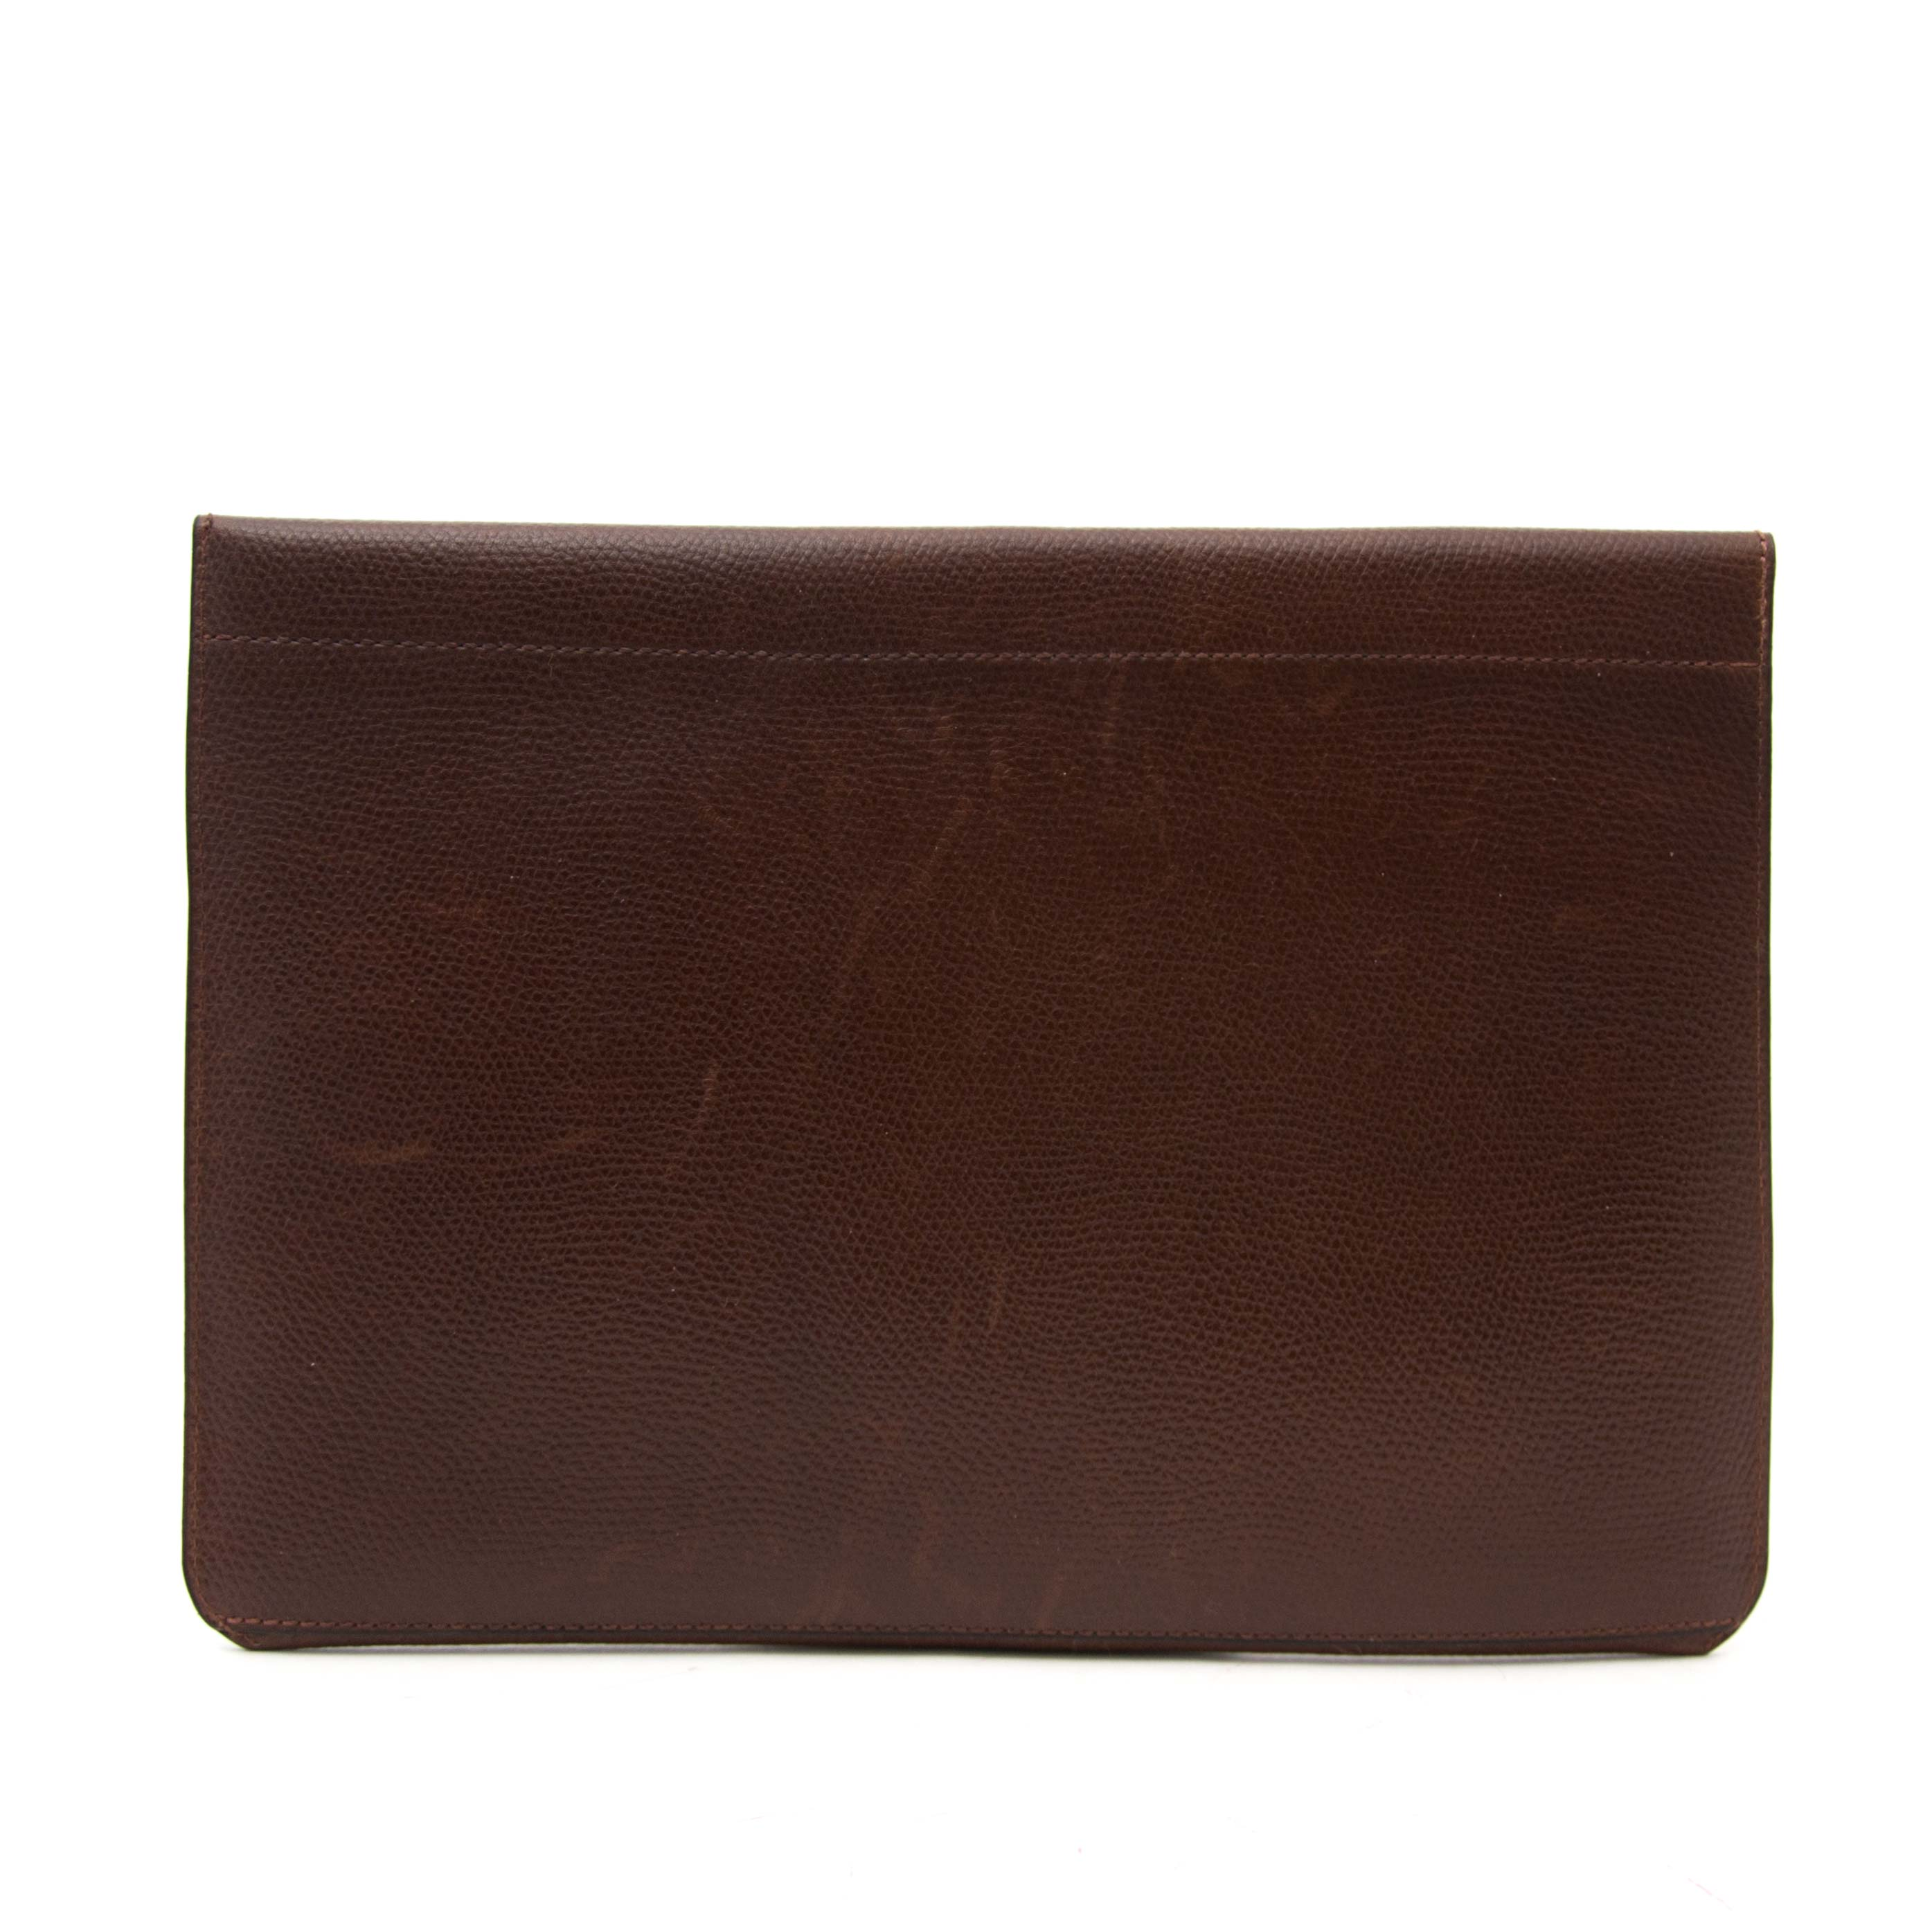 buy safe and secure online at labellov.com for the best price delvaux brown enveloppe clutch